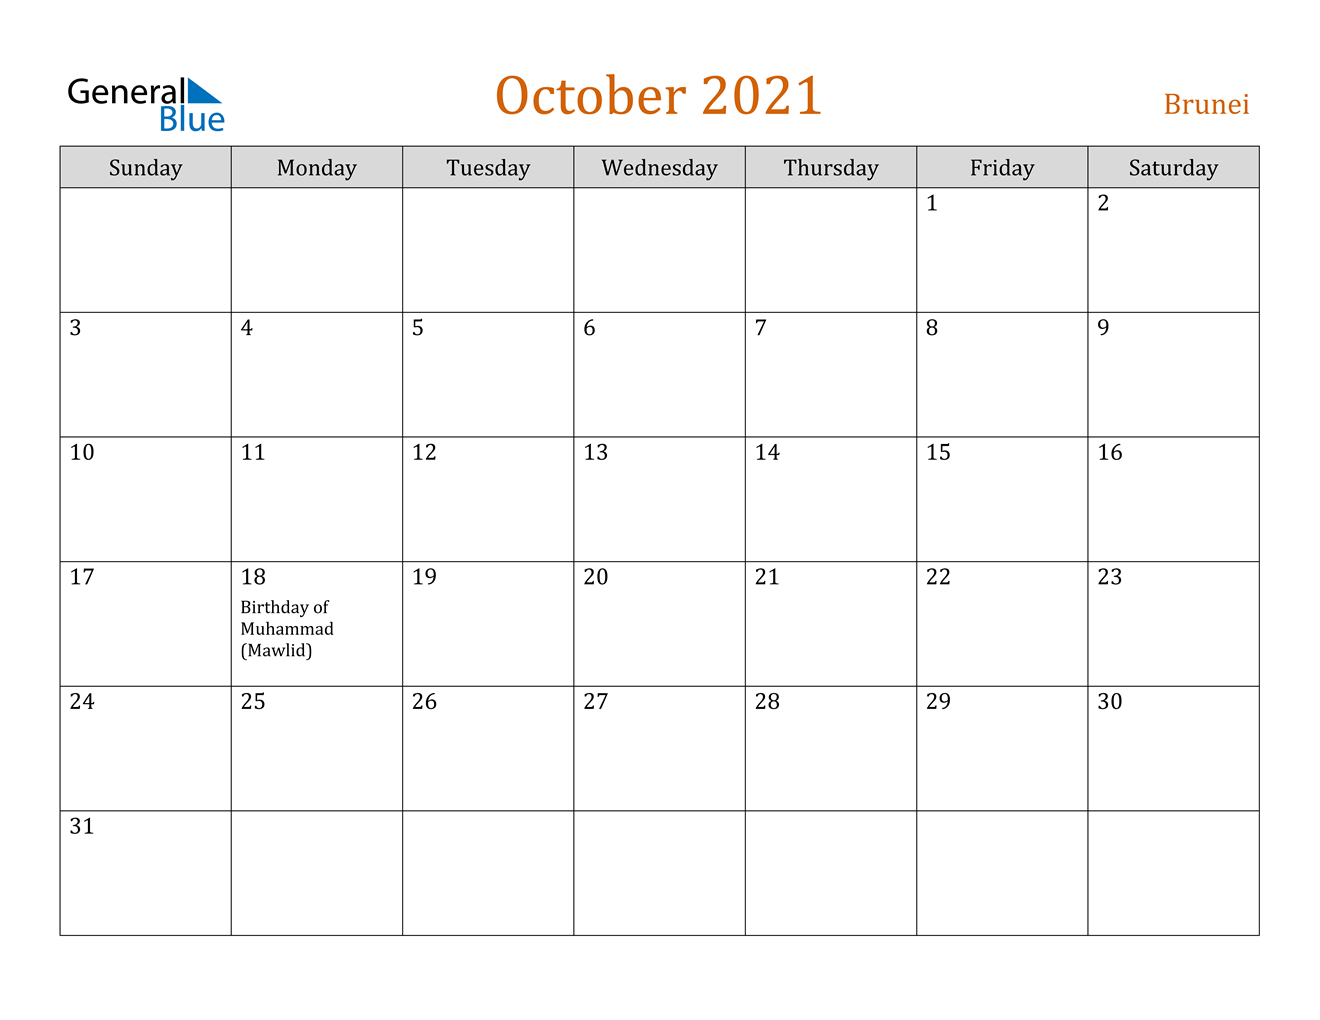 October 2021 Calendar Brunei